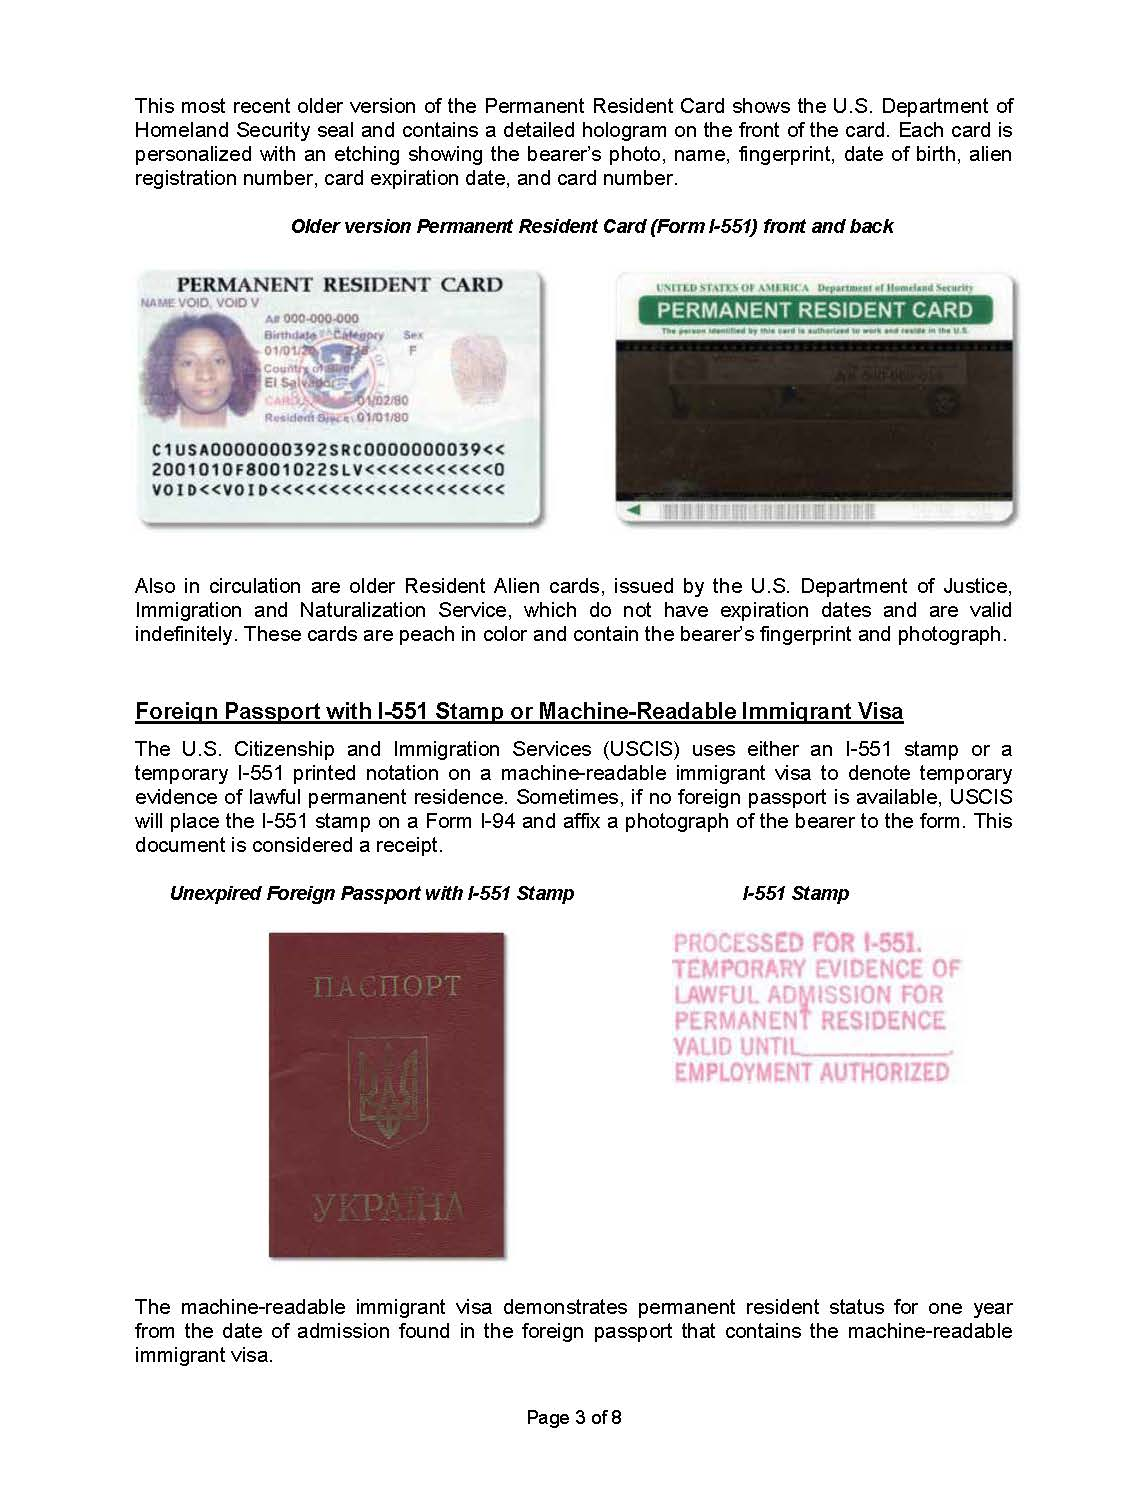 OOTB I-9 Acceptable Employee Verification Documents_Page_4.jpg